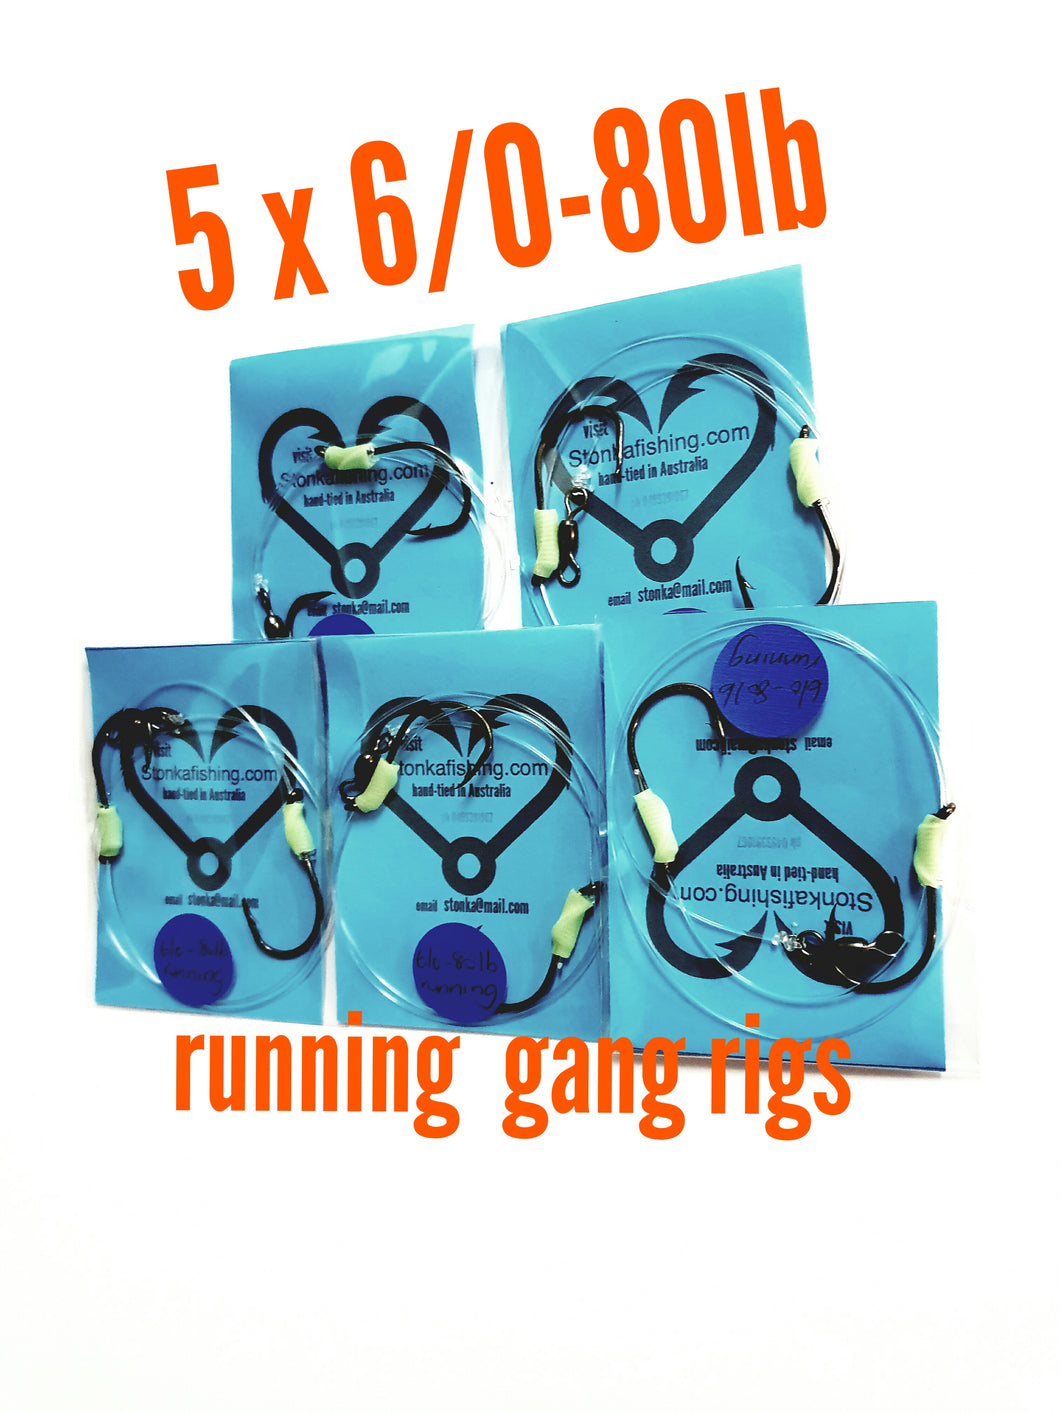 5x running gang rigs 6/0-80lb,fishing lumo snapper jew boat beach kingfish shark